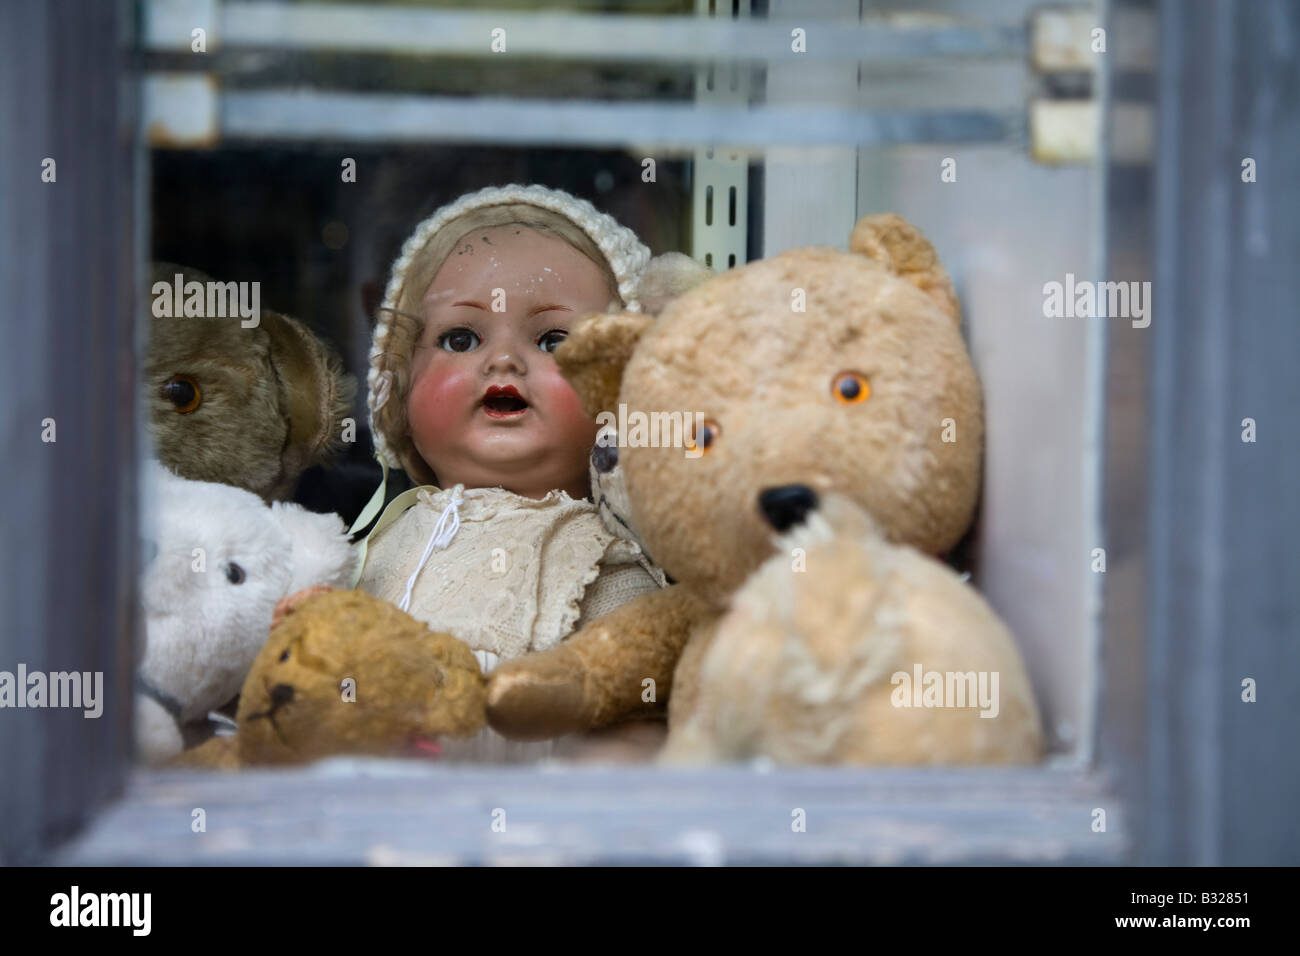 Antique toy shop, Old Town, Hastings, East Sussex, England - Stock Image